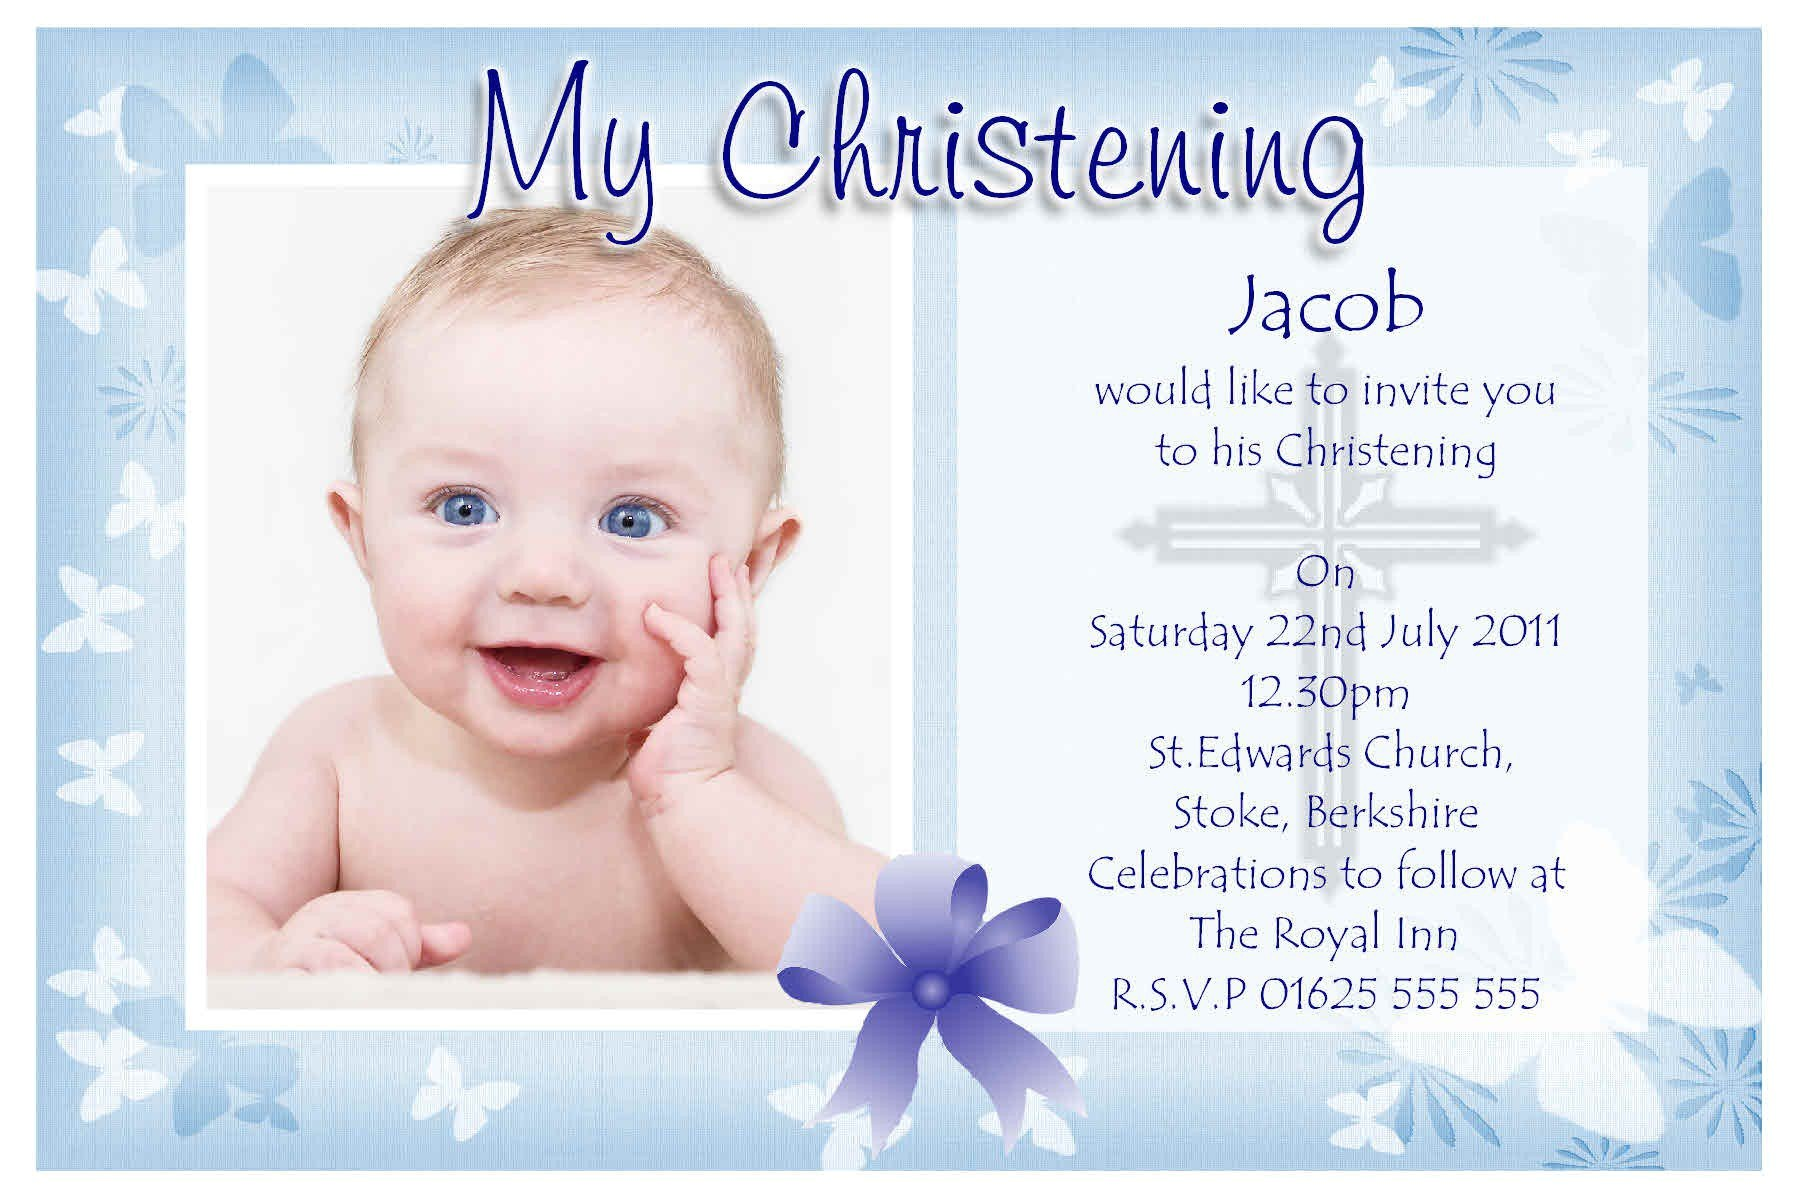 Unique Baptismal Invitation for Baby Boy Baptism Invitation Baptism Invitations for Boys New